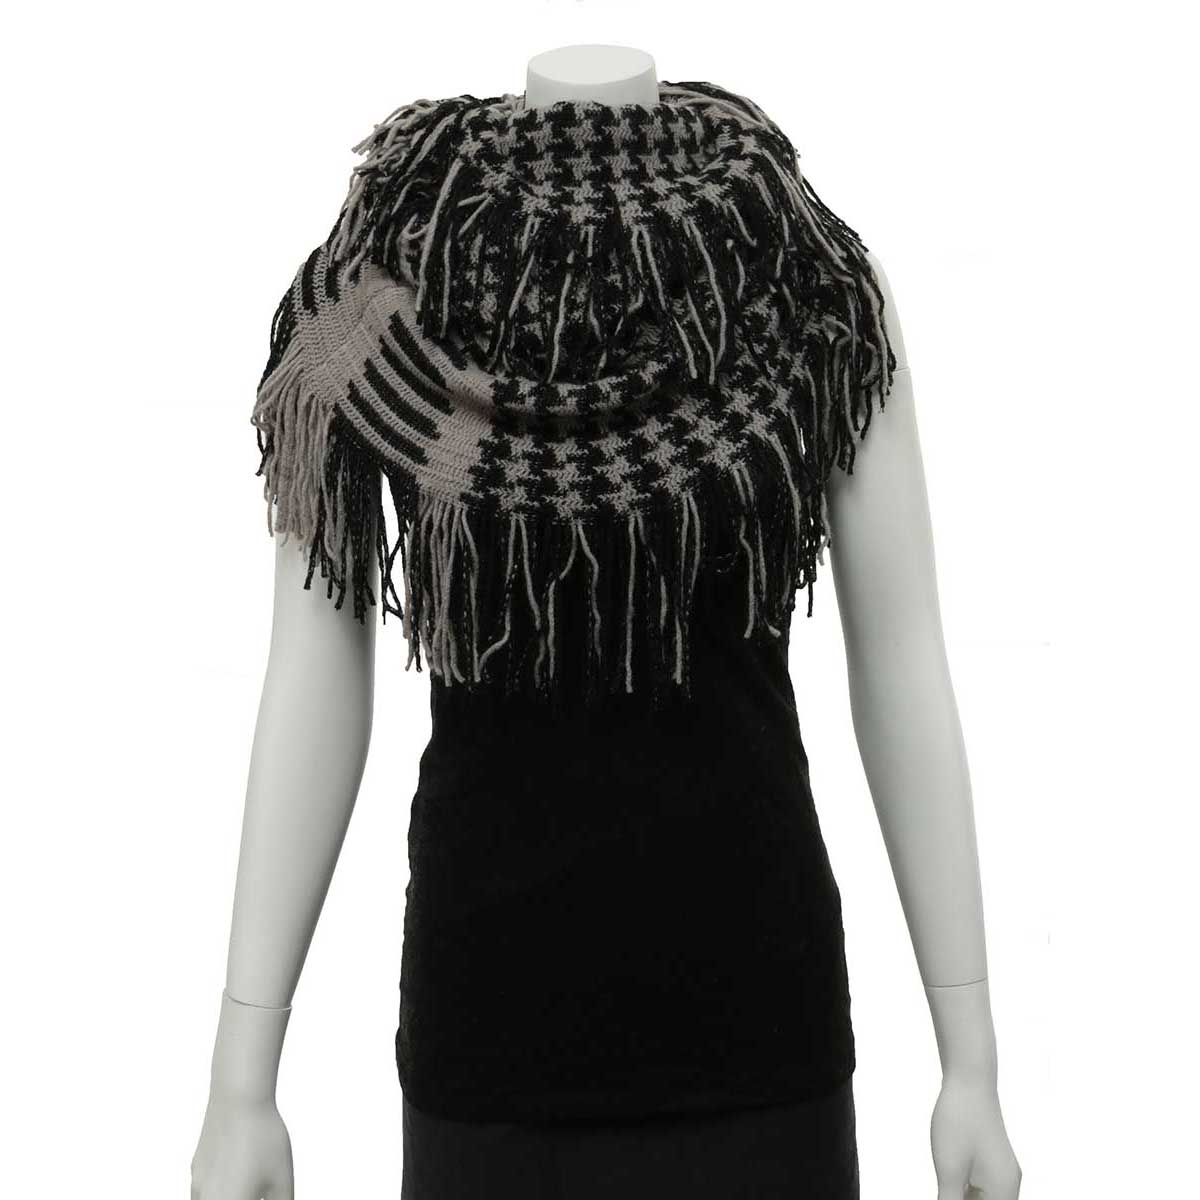 Black and Grey Herringbone Infinity Scarf with Fringe